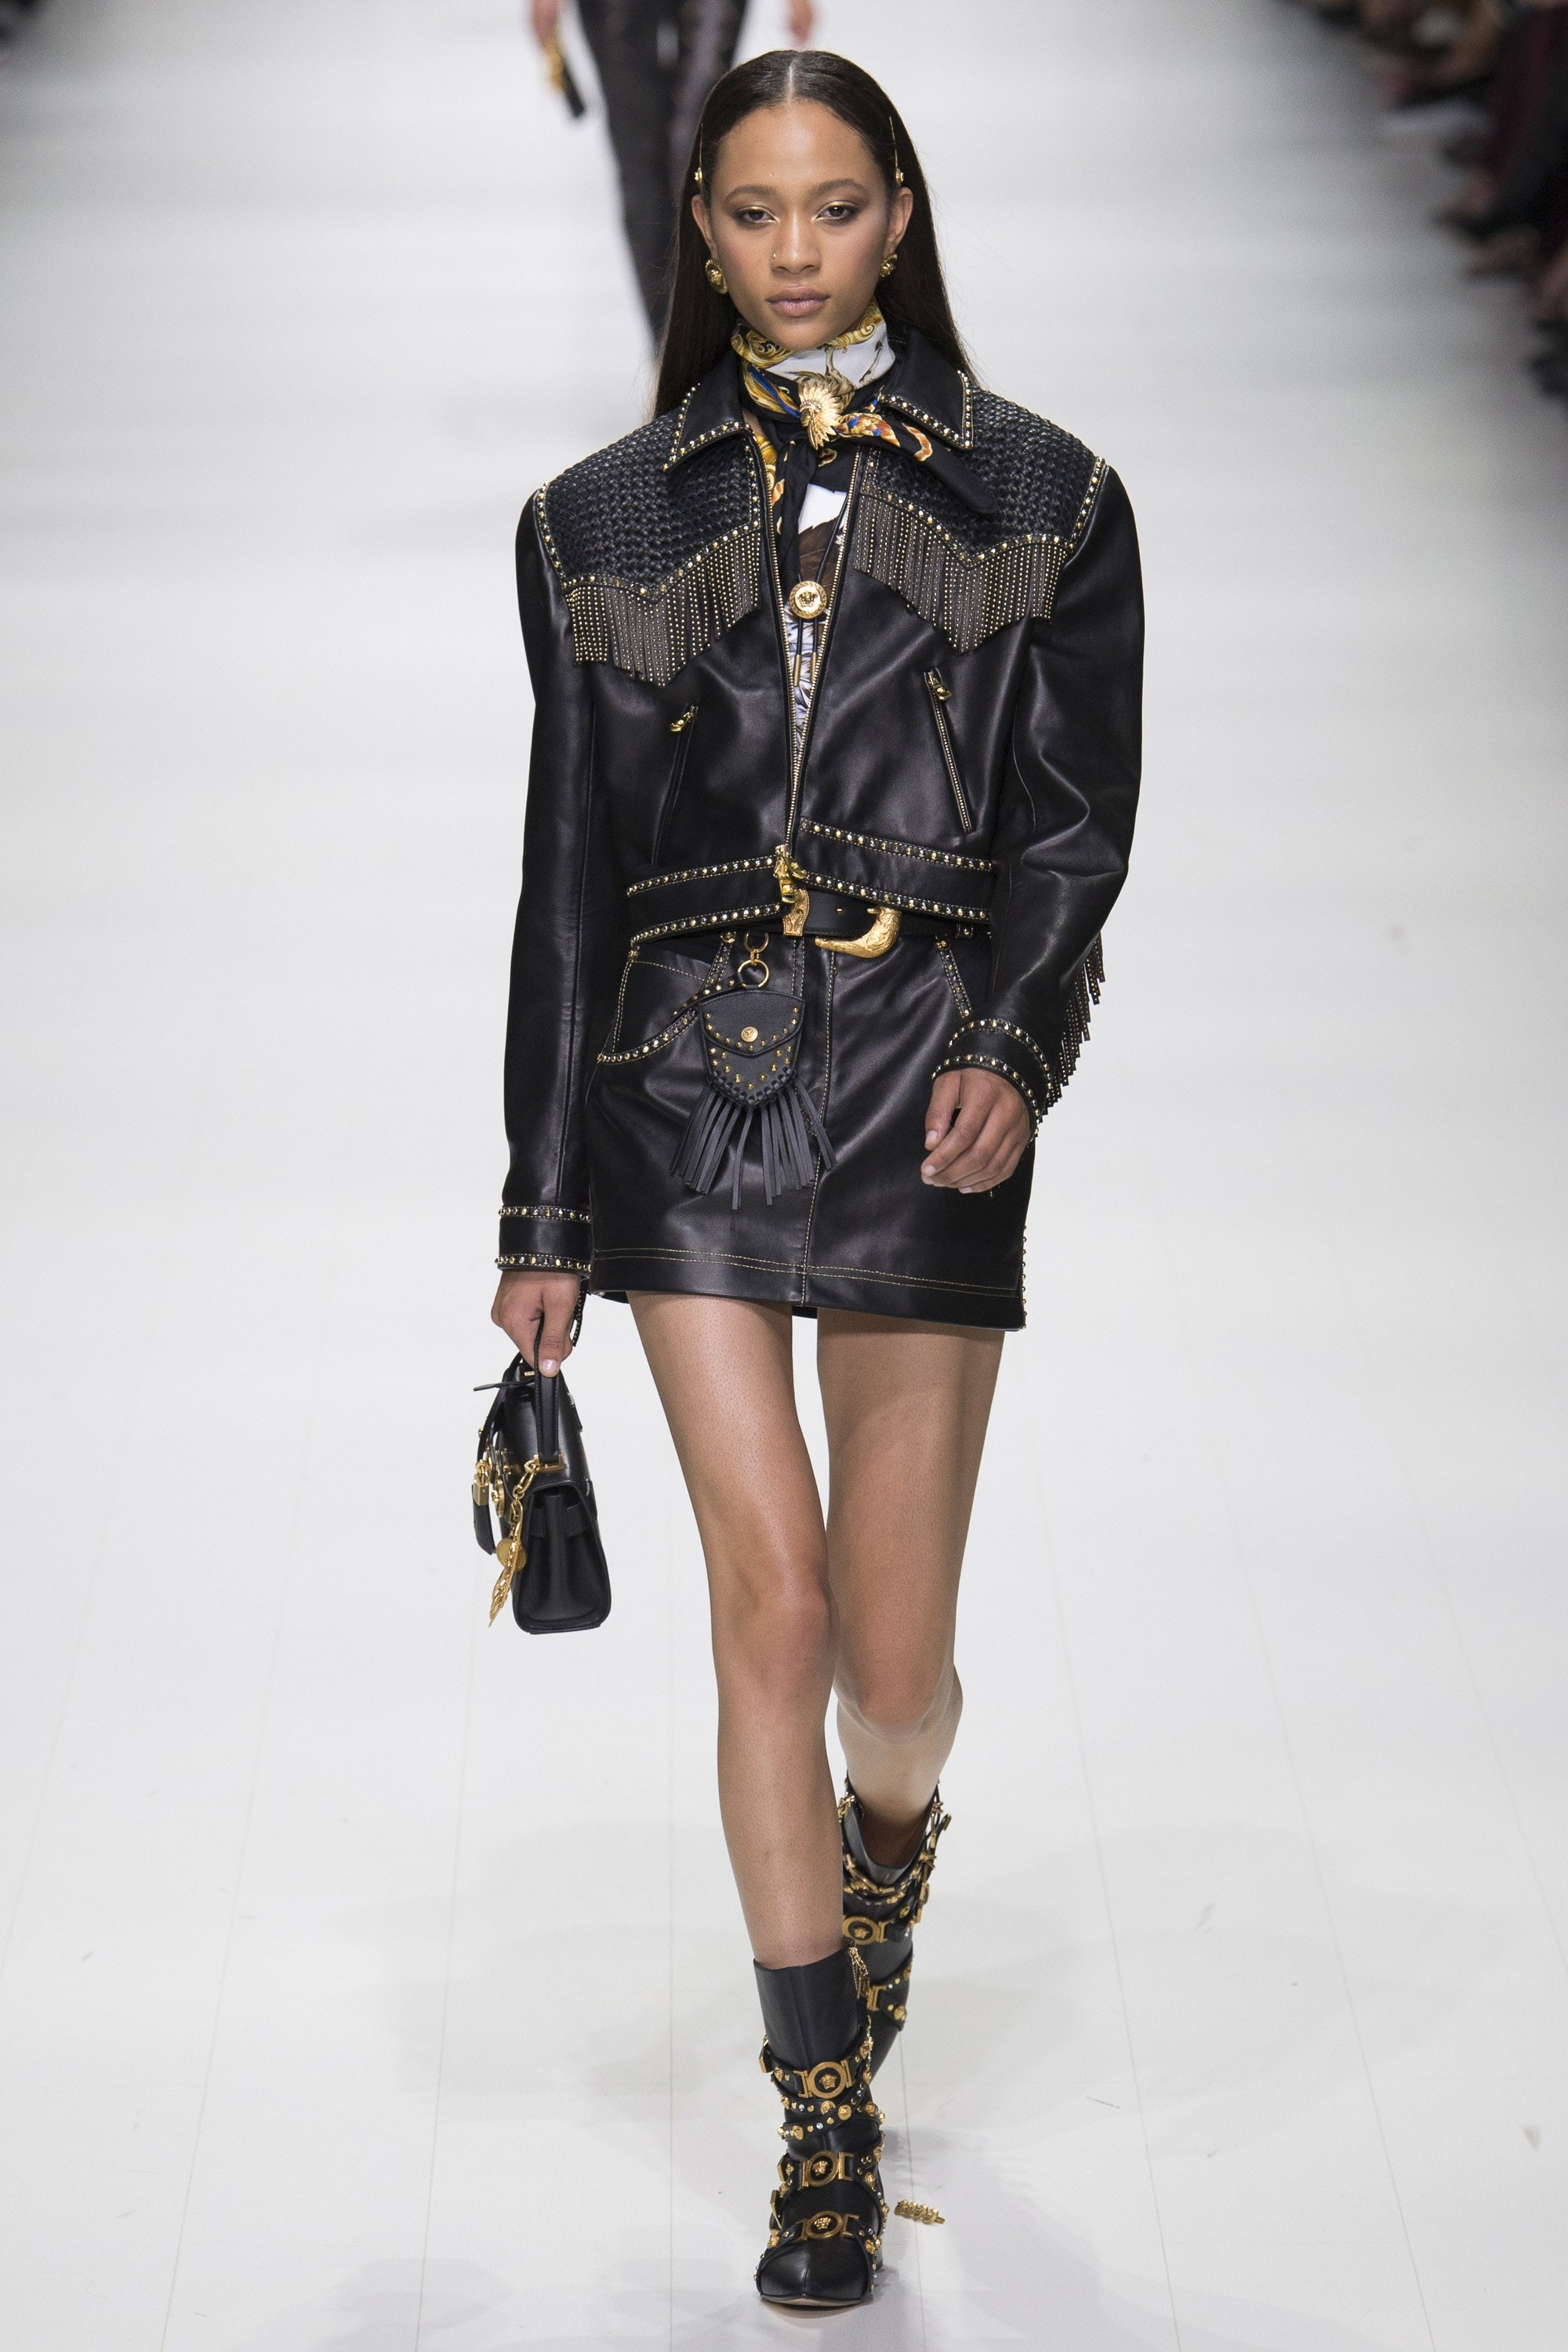 Western, Cowboy Look, Western Trend, SS18, Western Outfit, Fringes, Trendy Tuesday, Style, Fashion, Fashion Inspiration, Spring Fashion, SS18, Spring Summer 2018, Shop the Look, Versace, Gianni Versace, Donatella Versace, All Black, Leather, Leather Look